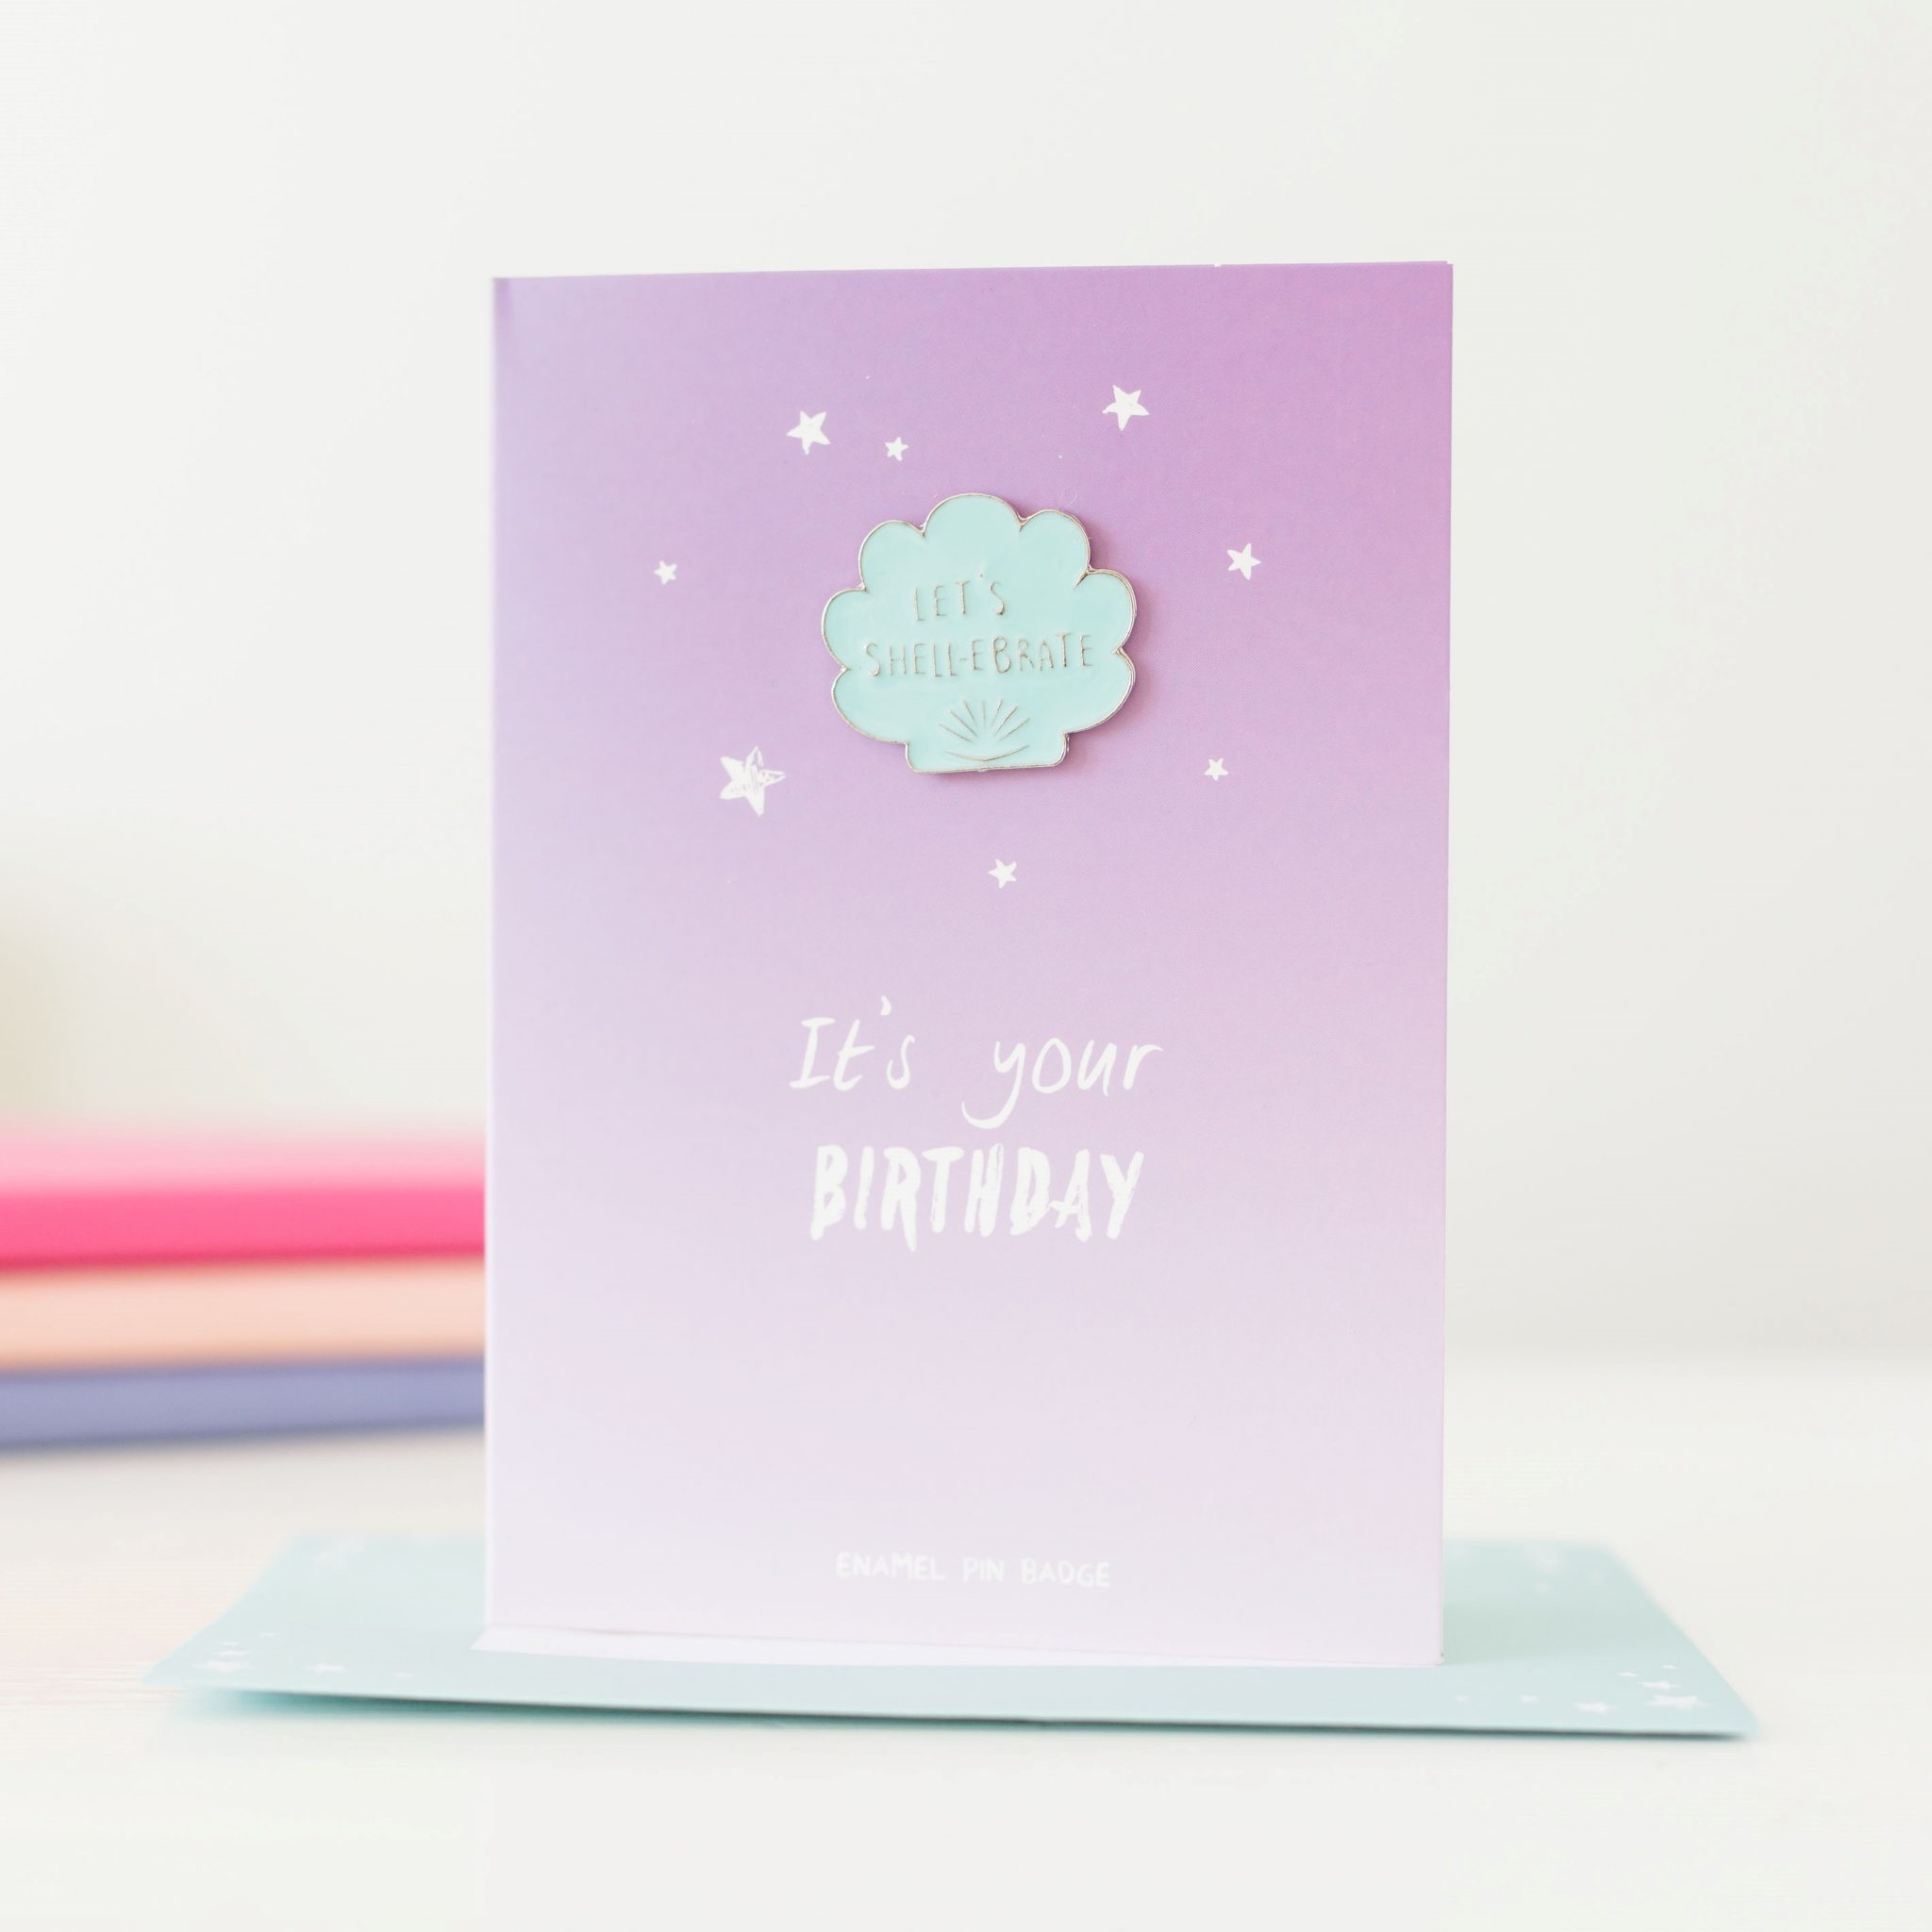 Let's Shell-ebrate Birthday Card With Pin Badge